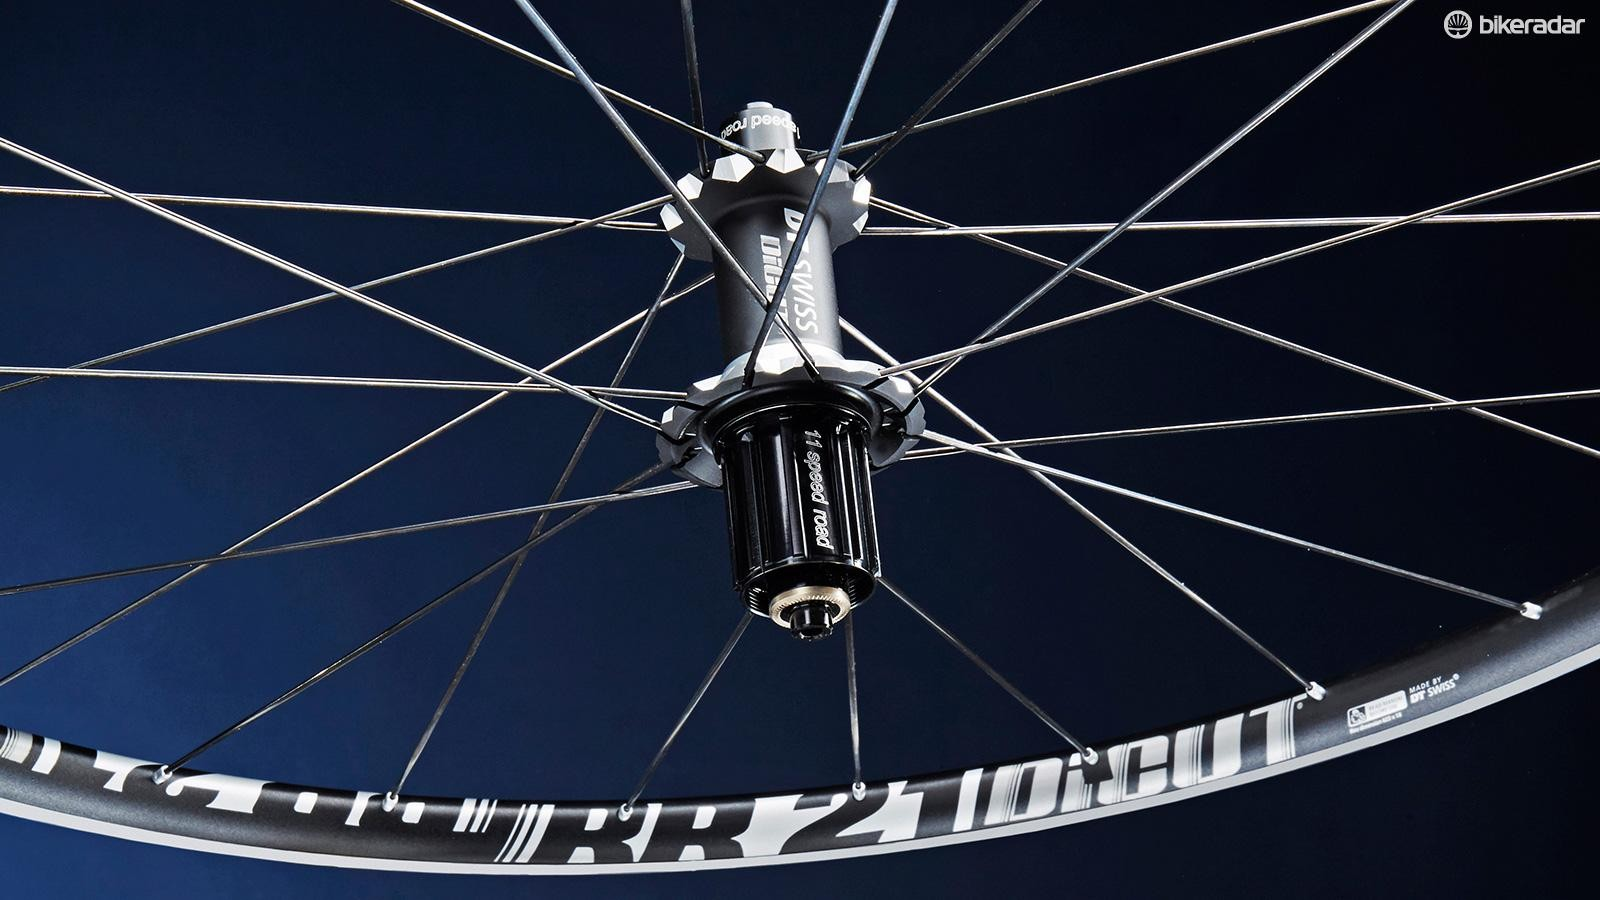 DT Swiss' RR 21s are a fine set of hoops